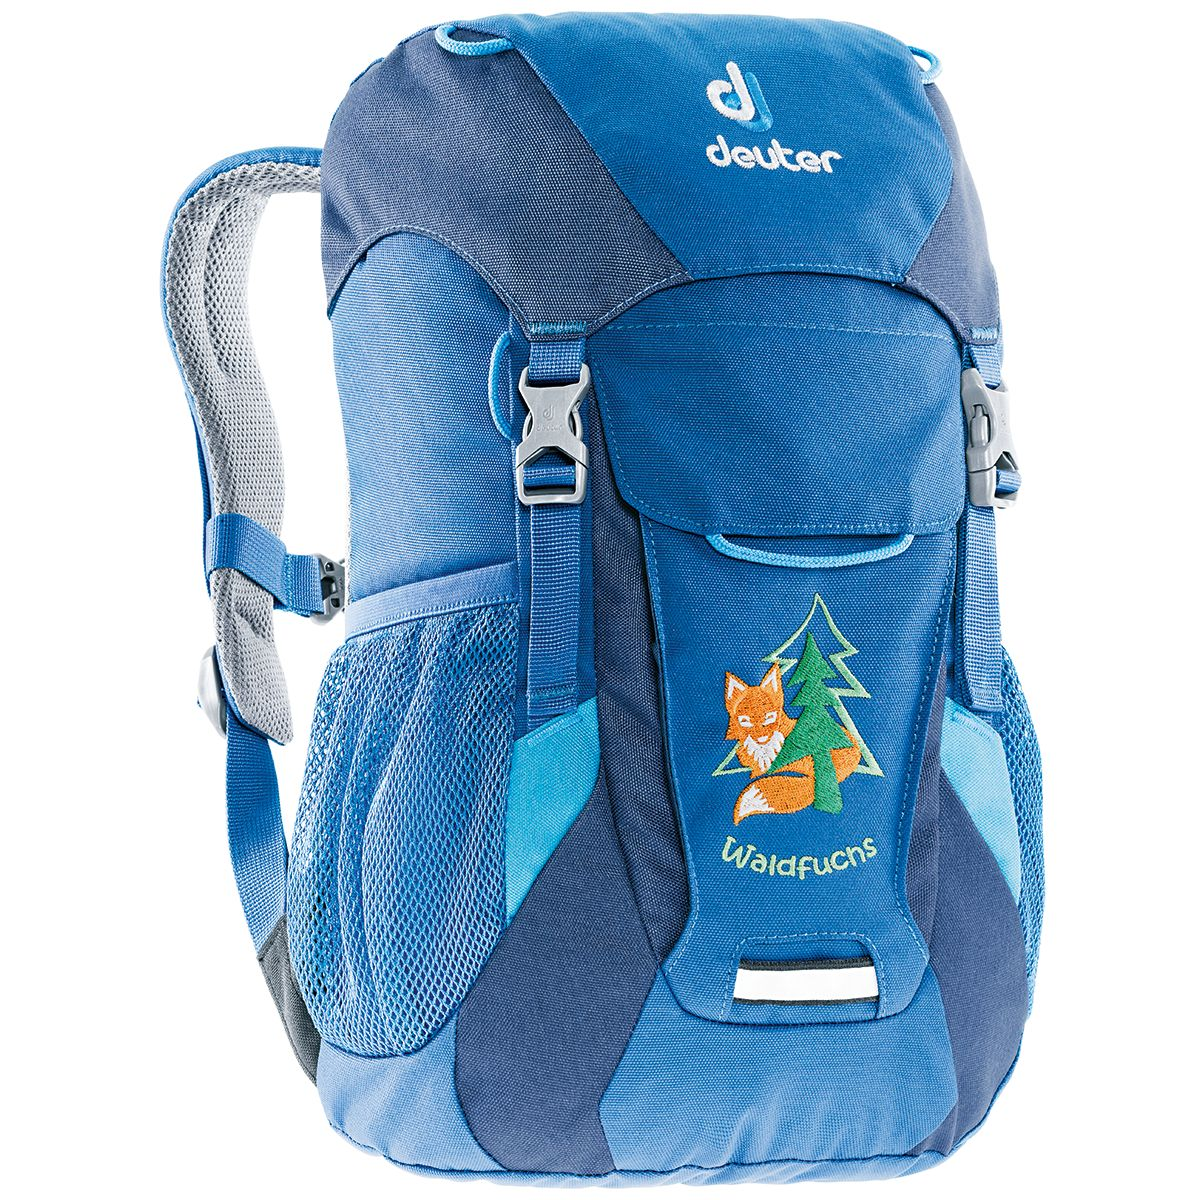 crazy price really comfortable cute cheap deuter WALDFUCHS Kinder-Rucksack